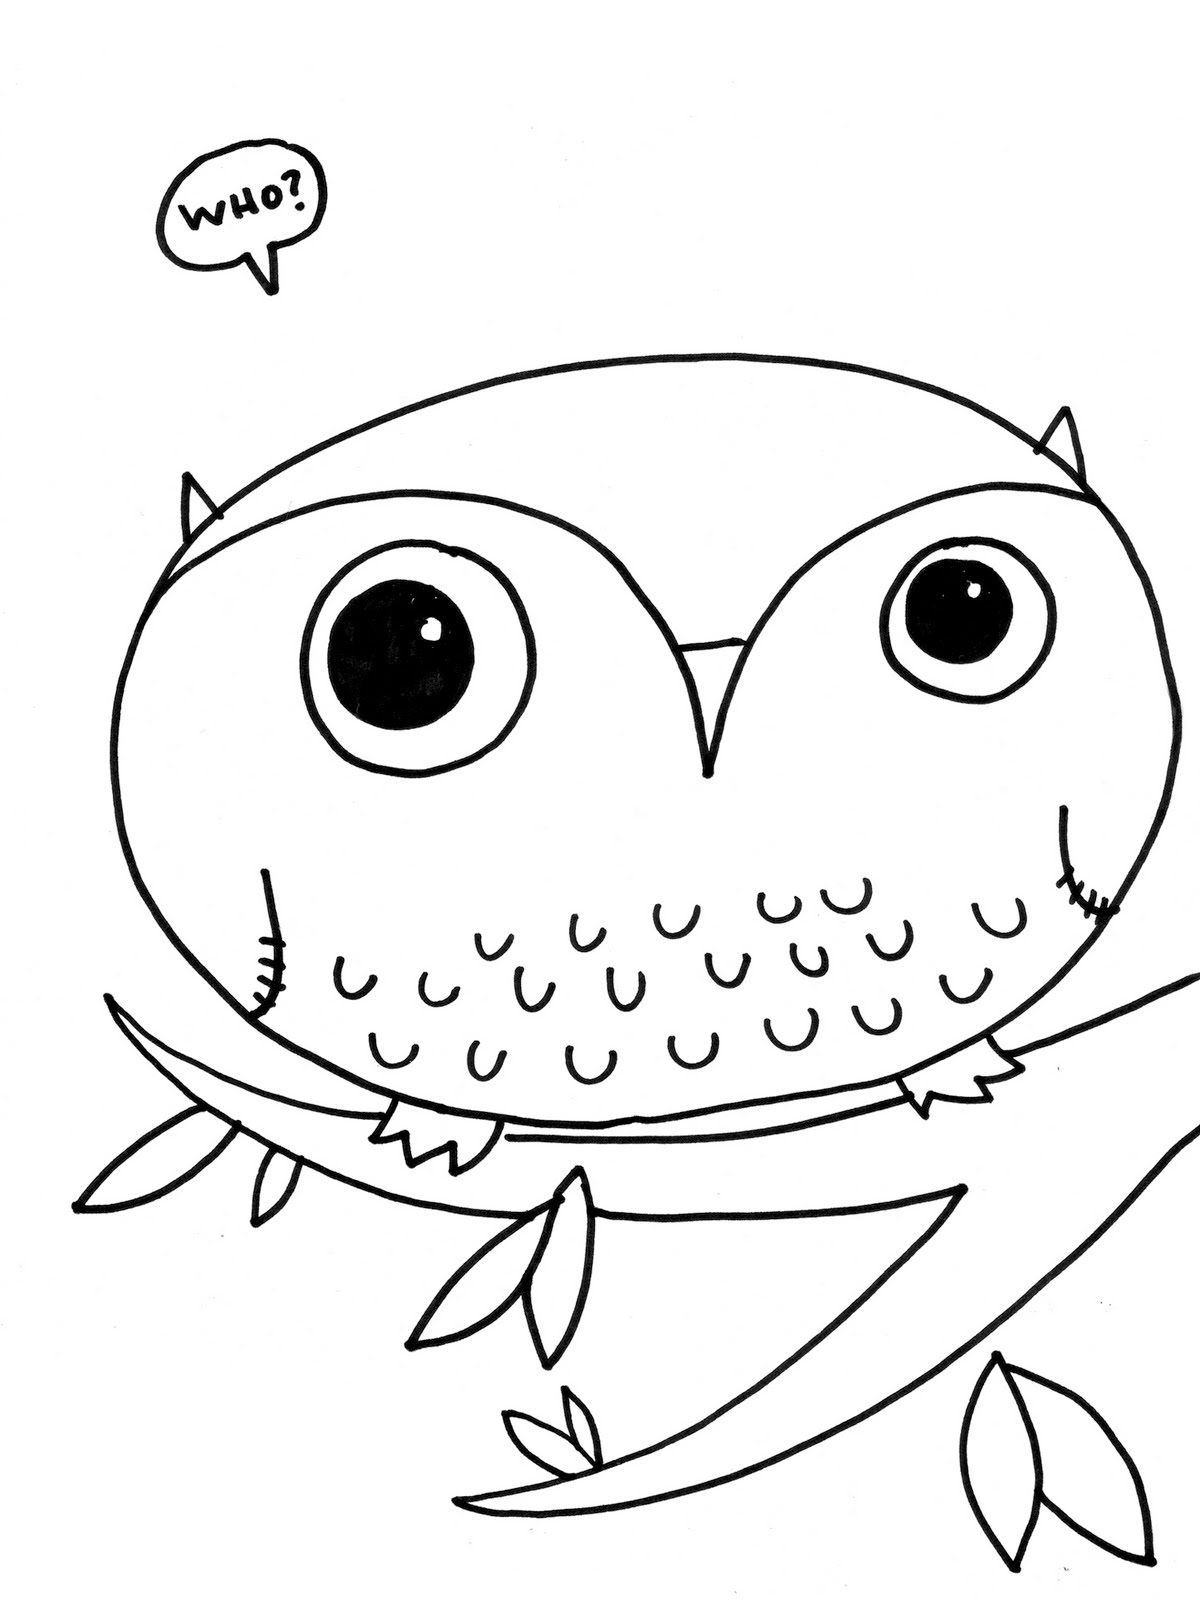 owl coloring pages free - Cute Owl Printable Coloring Pages